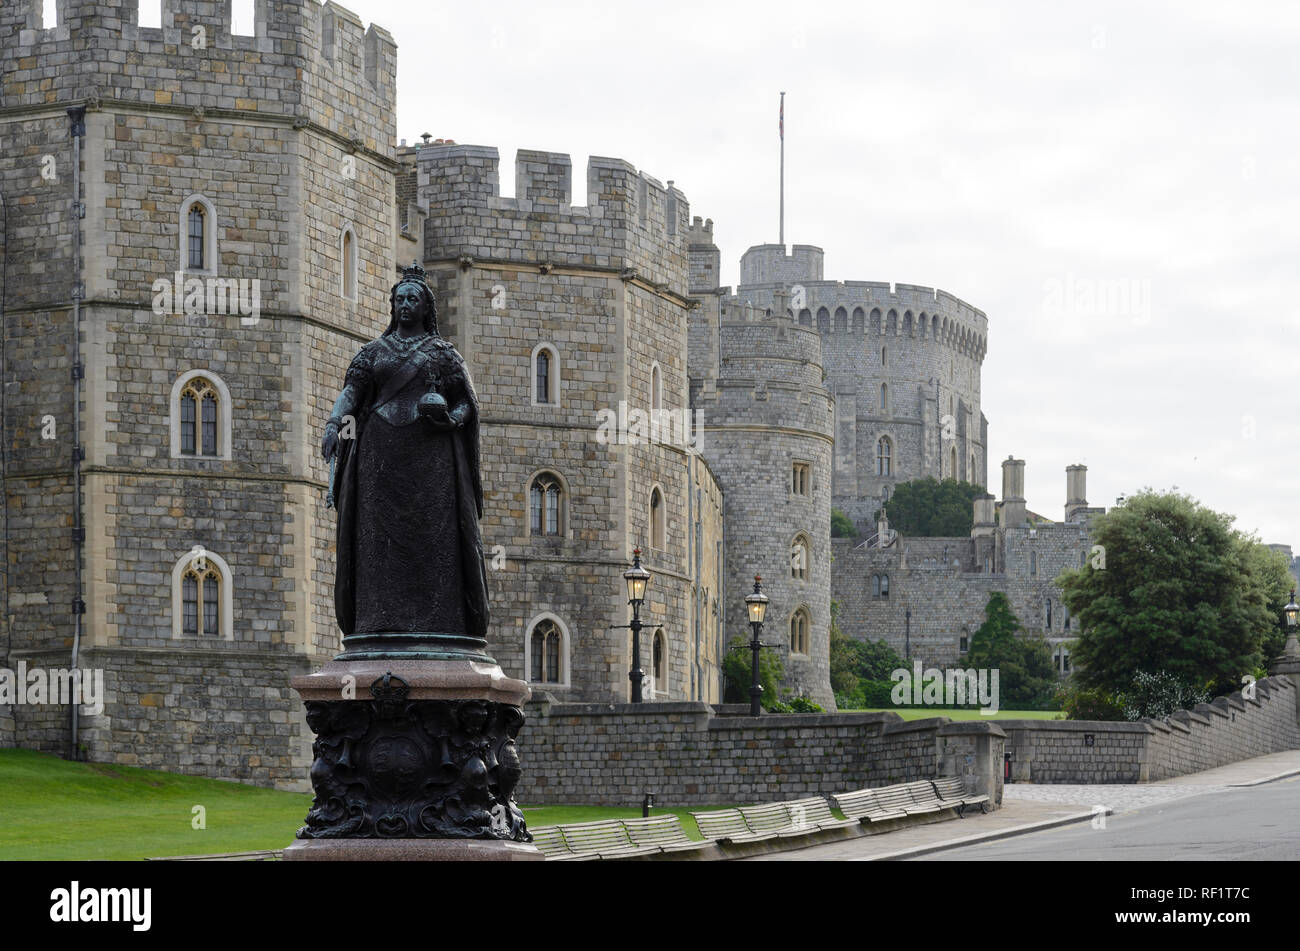 Statue of Queen Victoria in Front of Windsor Castle, Windsor, England, Grossbritannien, Europa - Stock Image